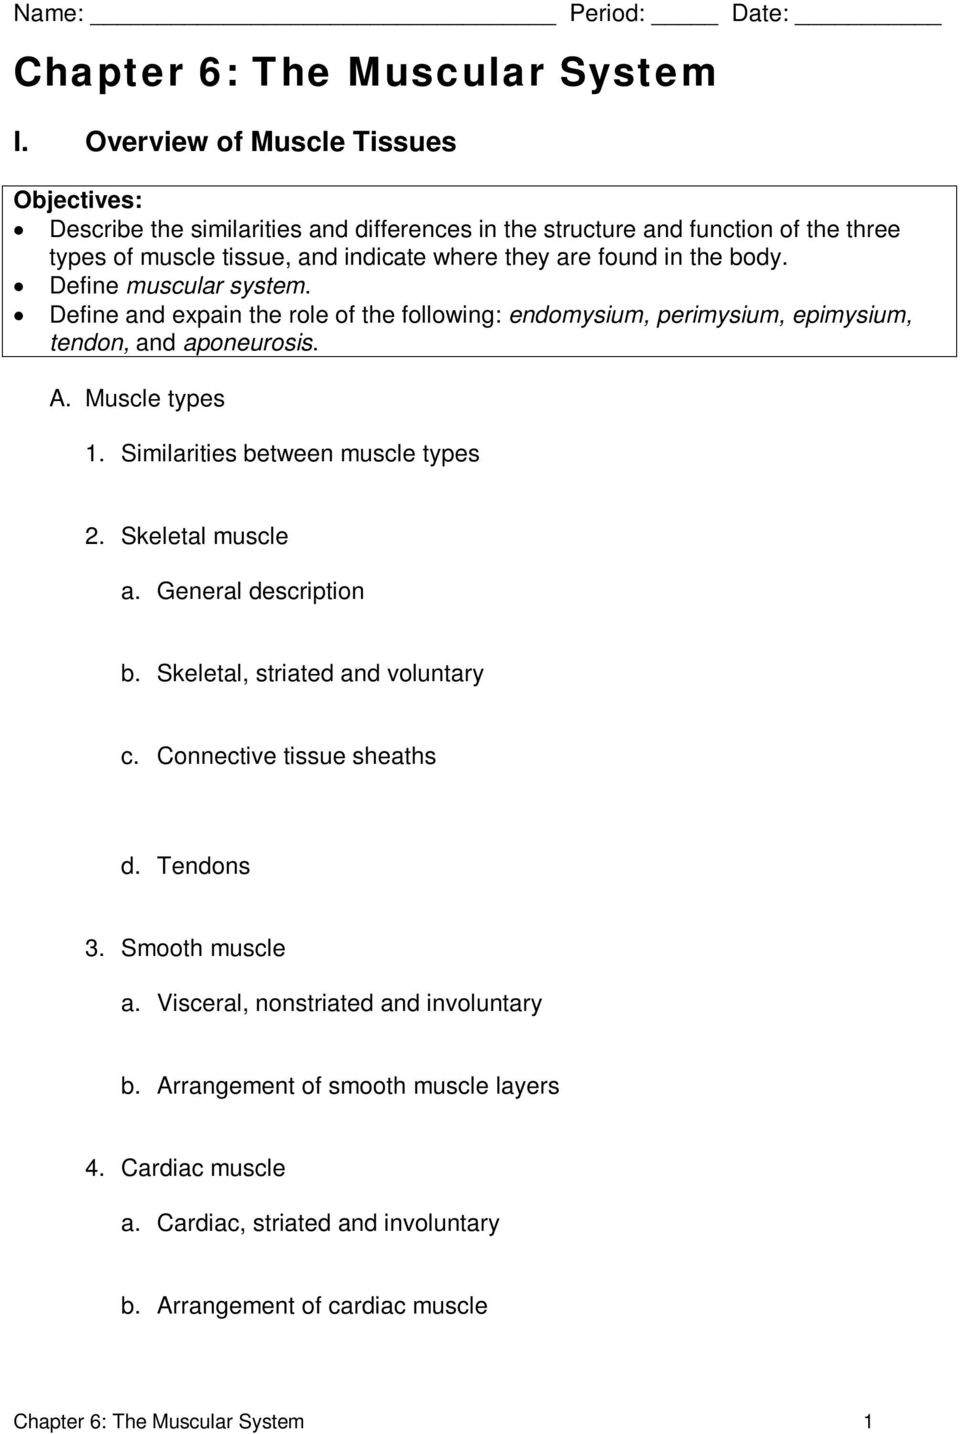 Chapter 6: The Muscular System - PDF